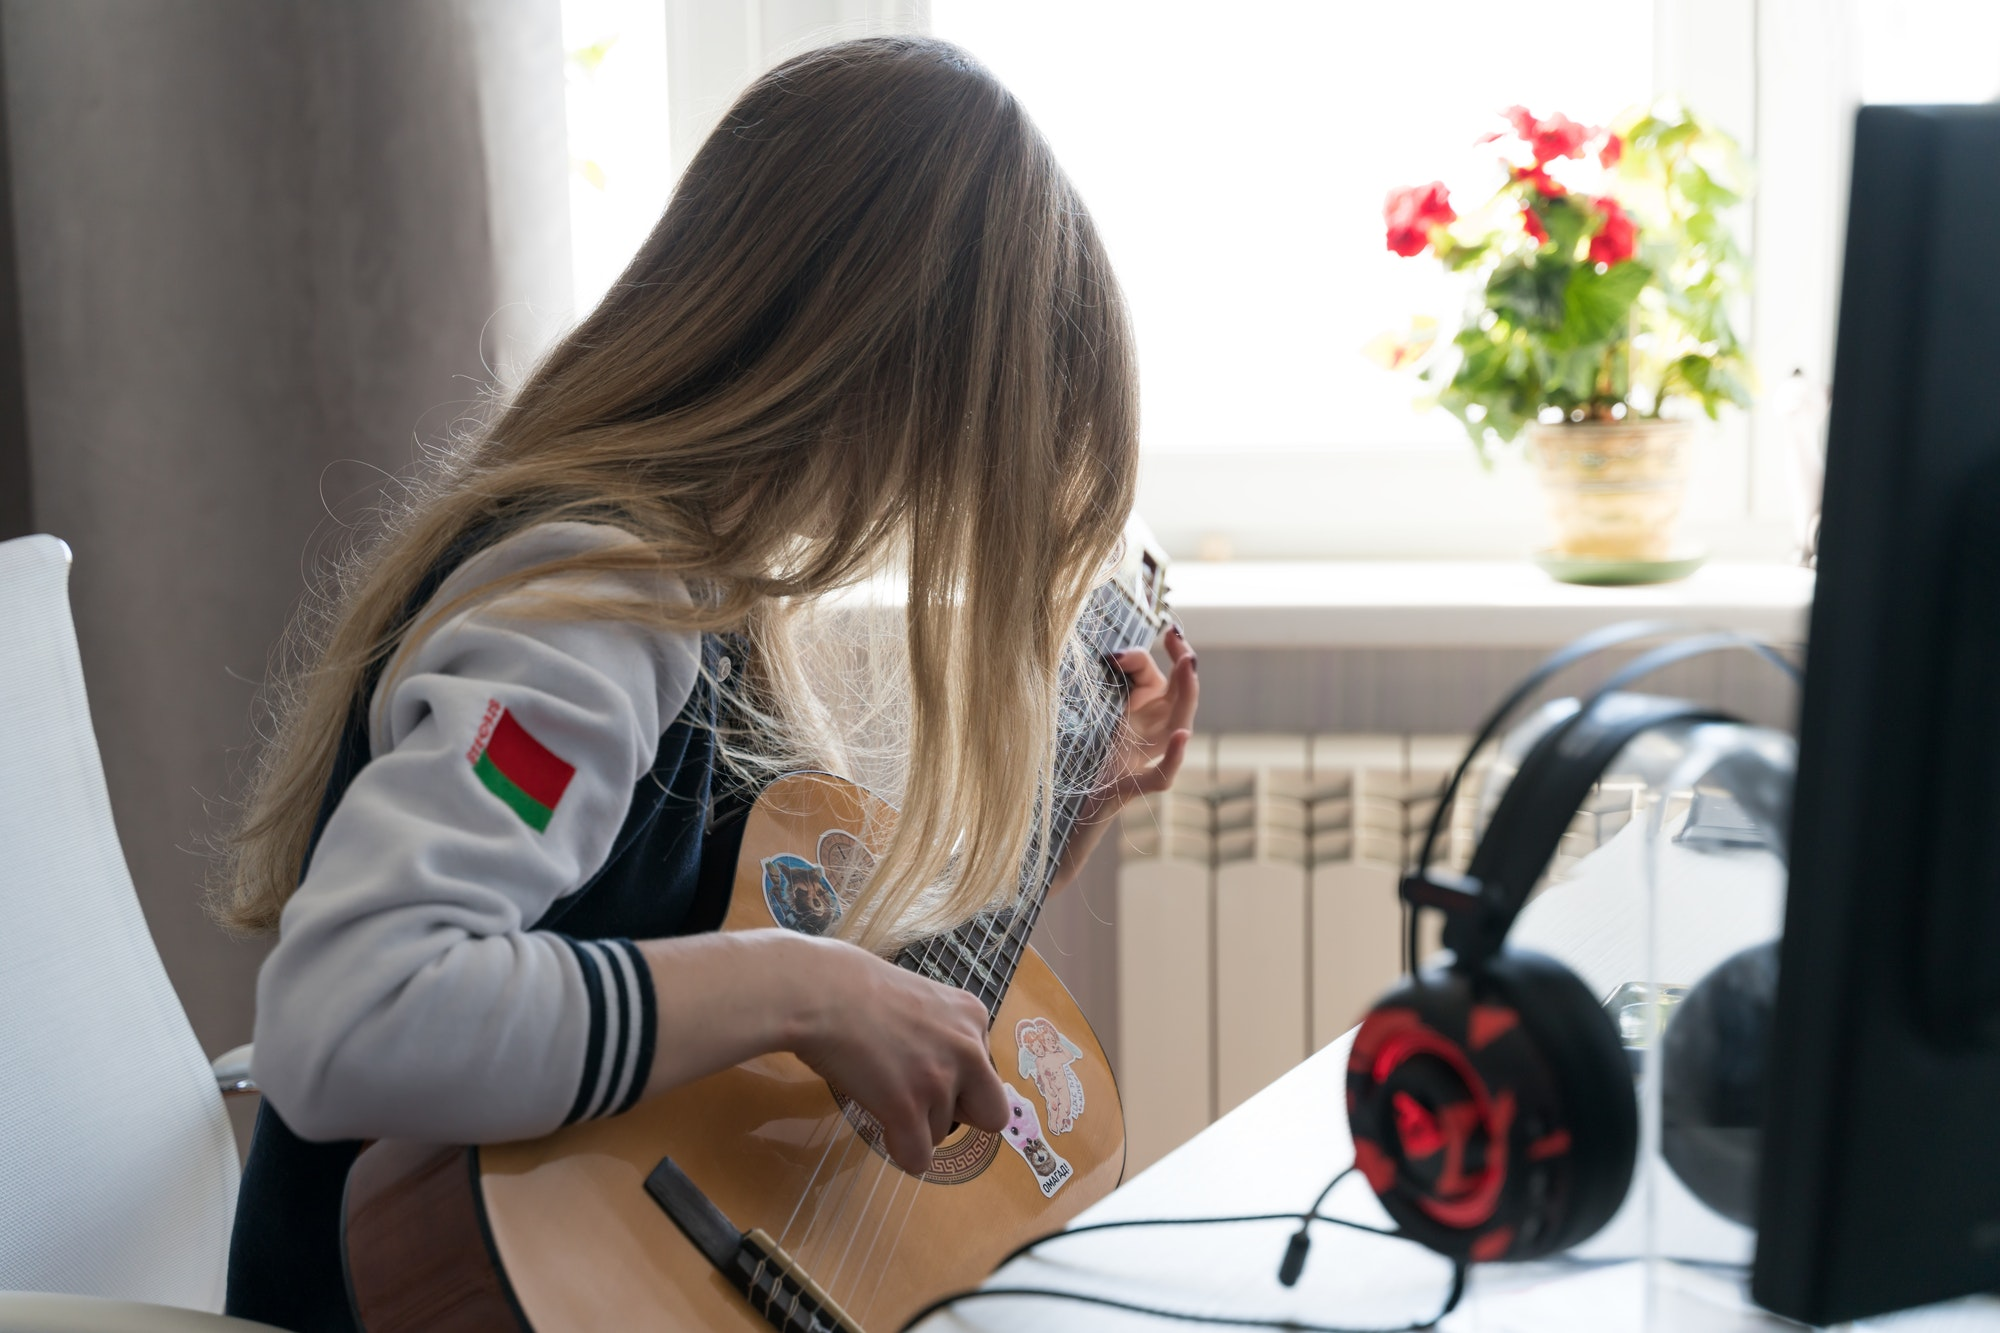 girl playing guitar in the room by the window